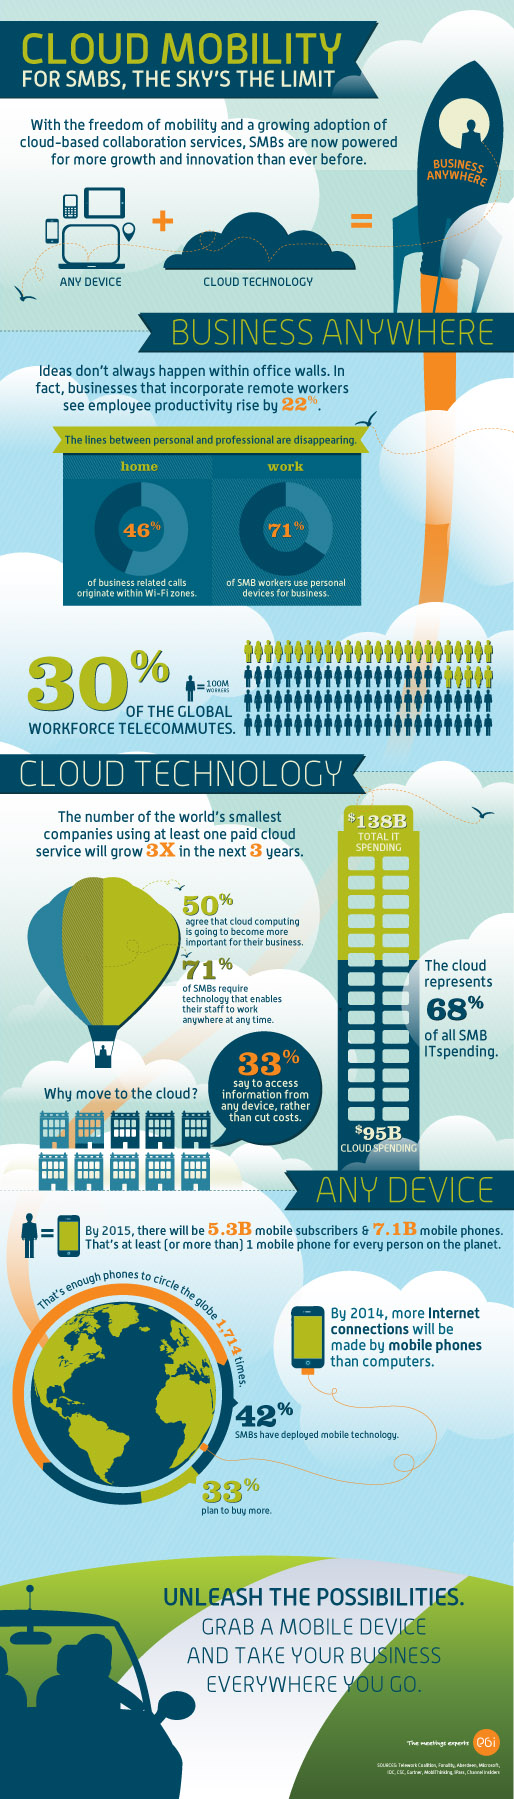 cloud-mobility--power-for-smbs_505092b6d6038